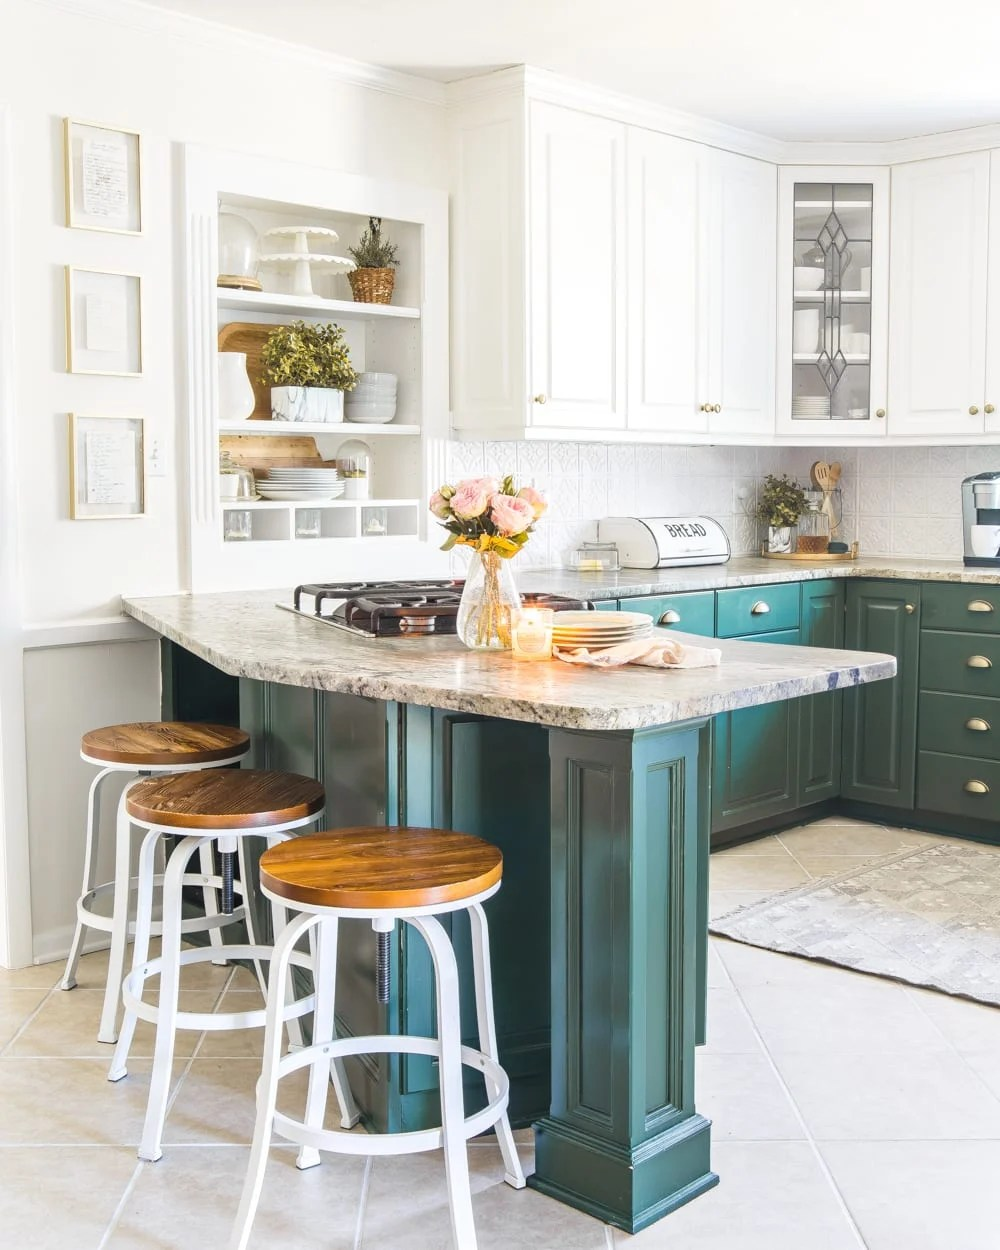 How to Choose Paint Colors for Your Home Perfectly Every Single Time | Sherwin Williams Billiard Green Kitchen Cabinets Two-Tone